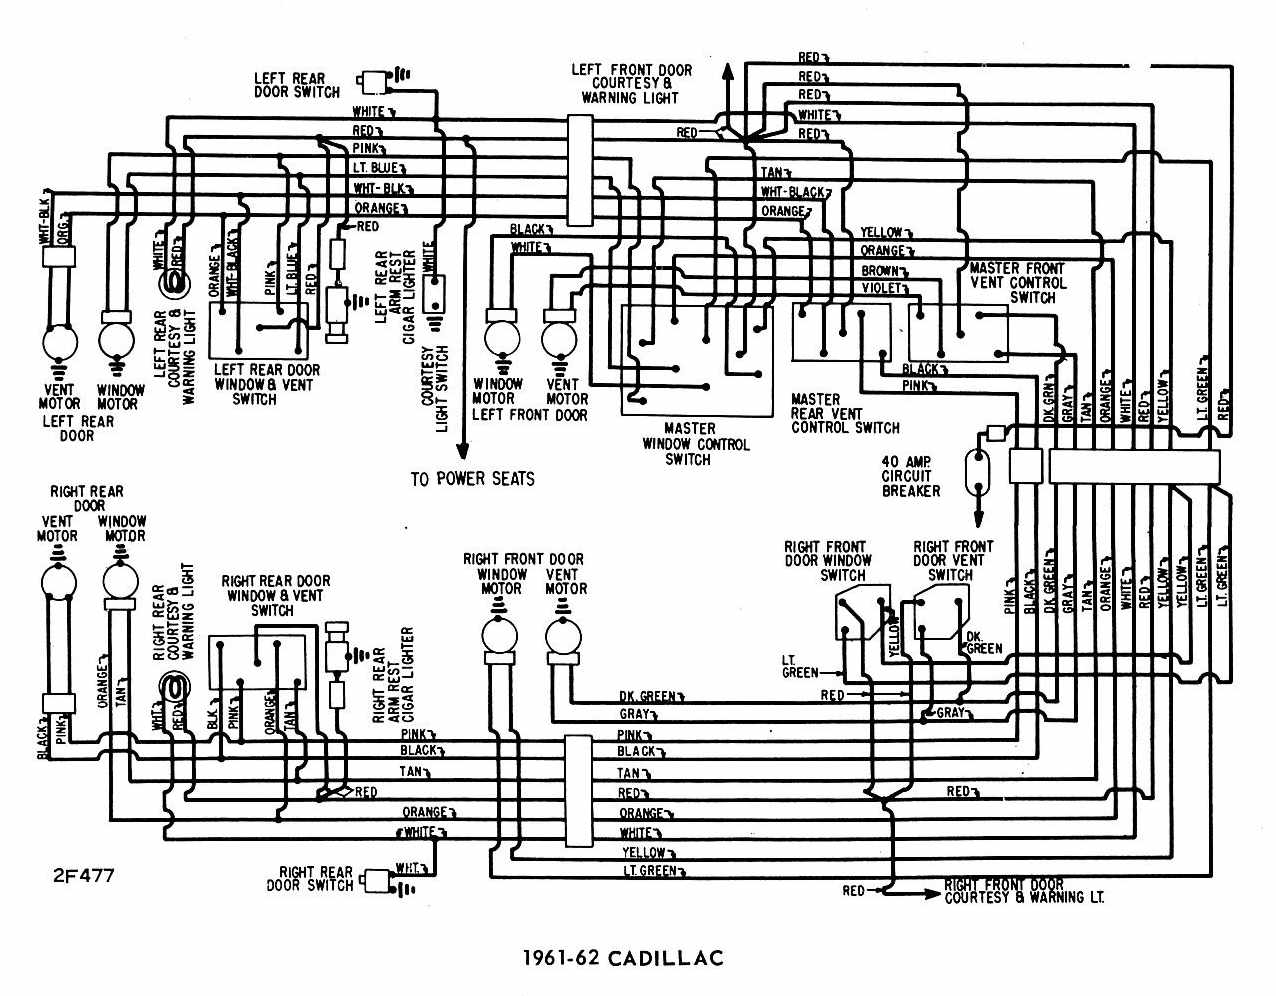 Cadillac Car Manuals Wiring Diagrams Pdf Fault Codes 1965 Gm Stereo Diagram Download